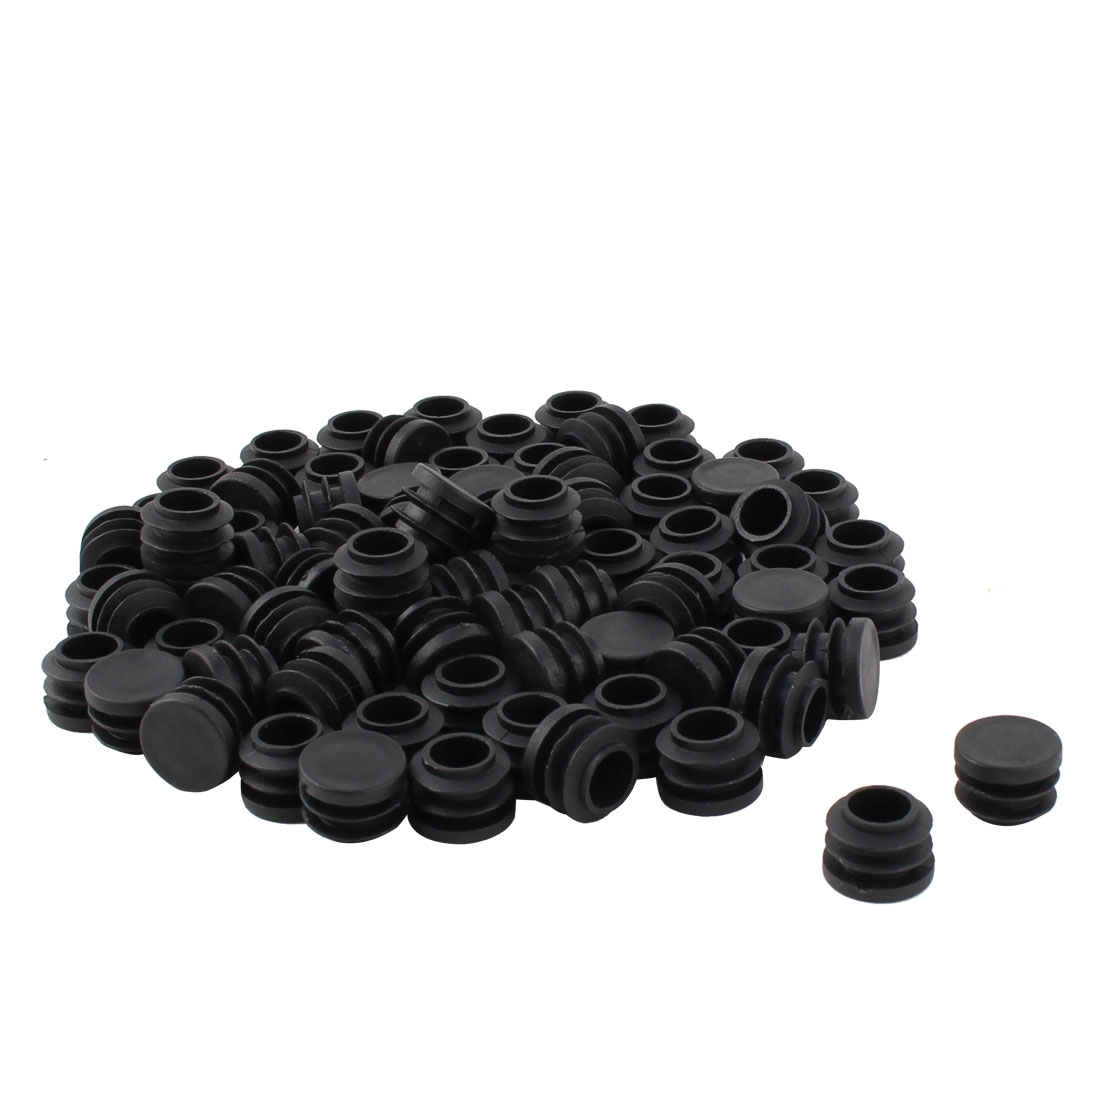 Furniture Table Chair Plastic Round Tube Pipe Insert Cap Cover Protector Black 19mm Dia 80pcs